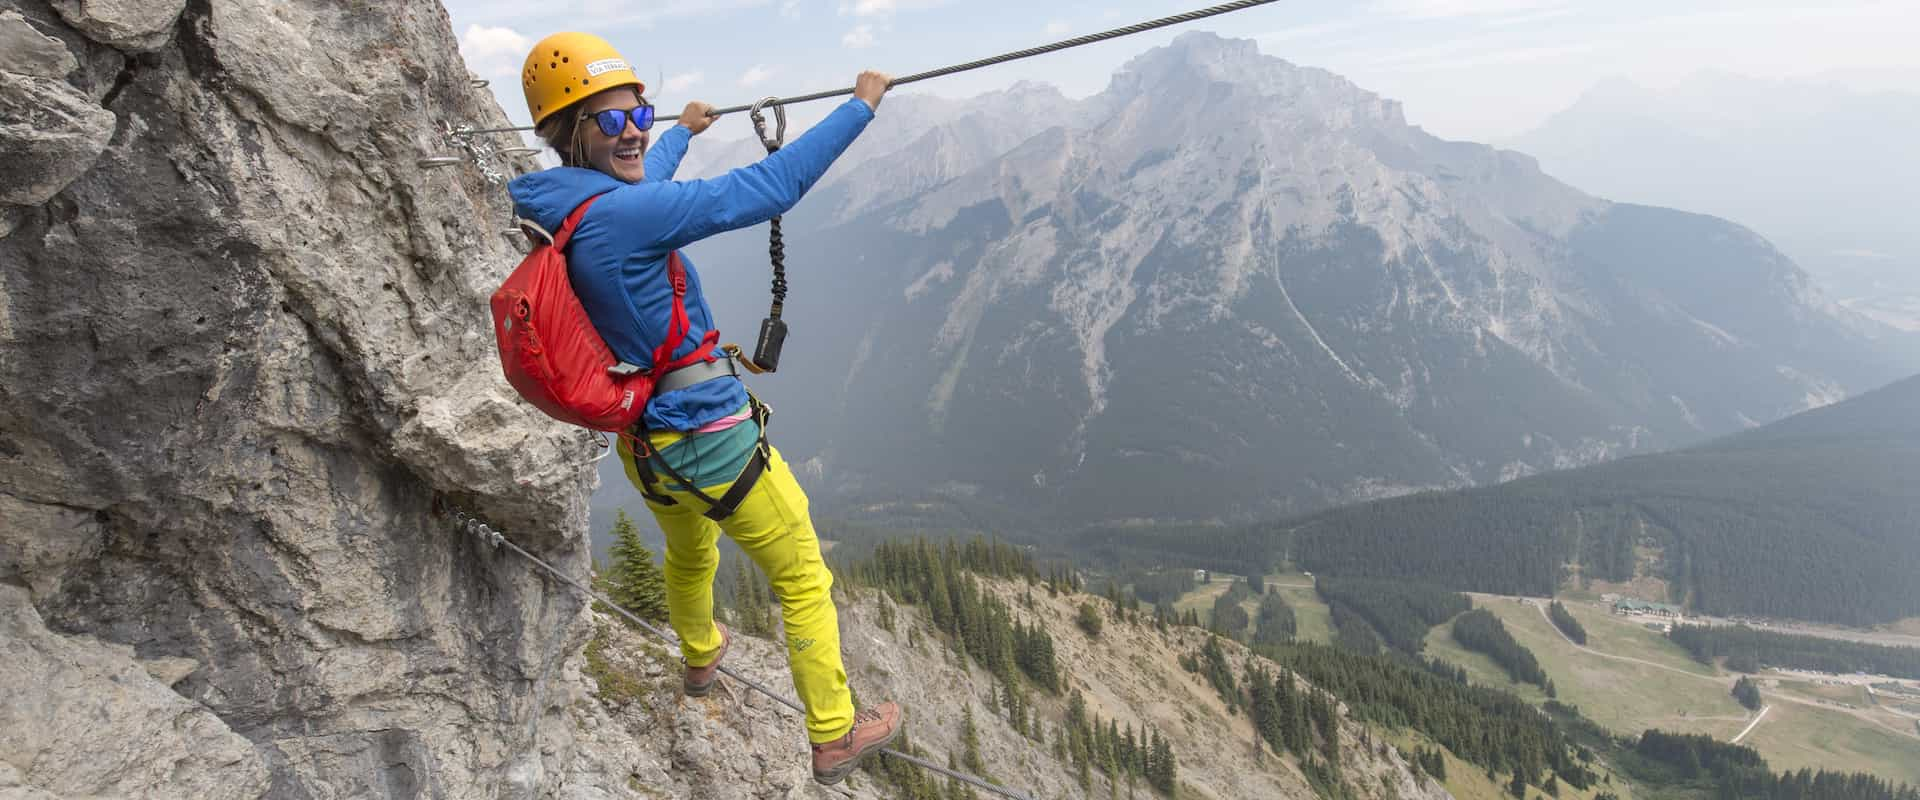 Cross a wire bridge on Mount Norquay's Via Ferrata Skyline Route in Banff in the Canadian Rockies